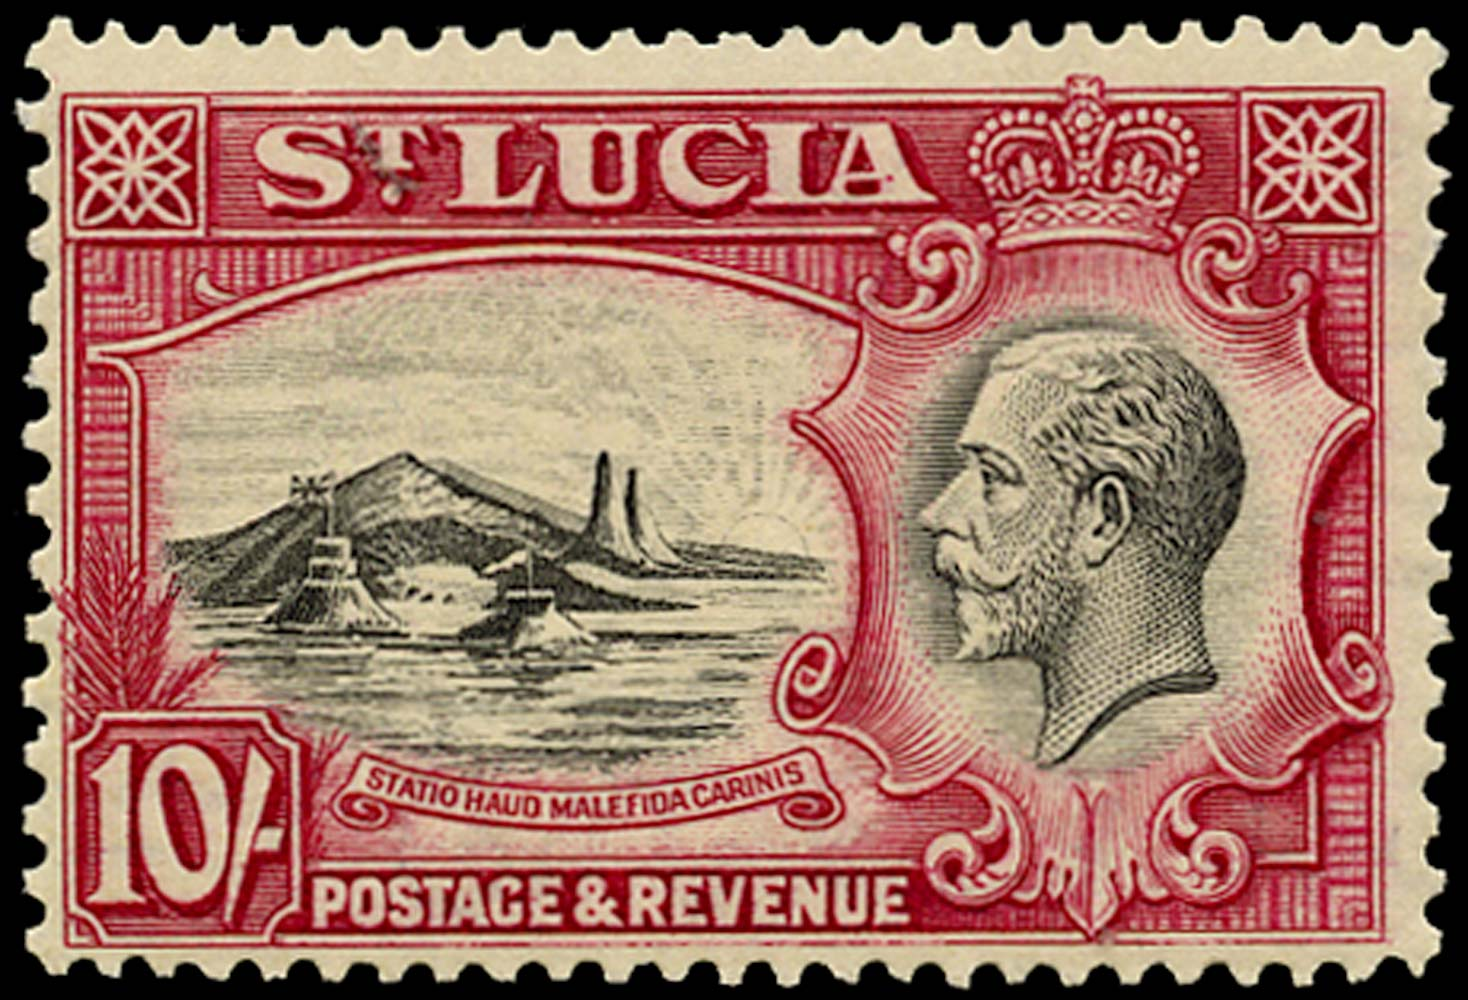 ST LUCIA 1936  SG124 Mint KGV 10s black and carmine unmounted